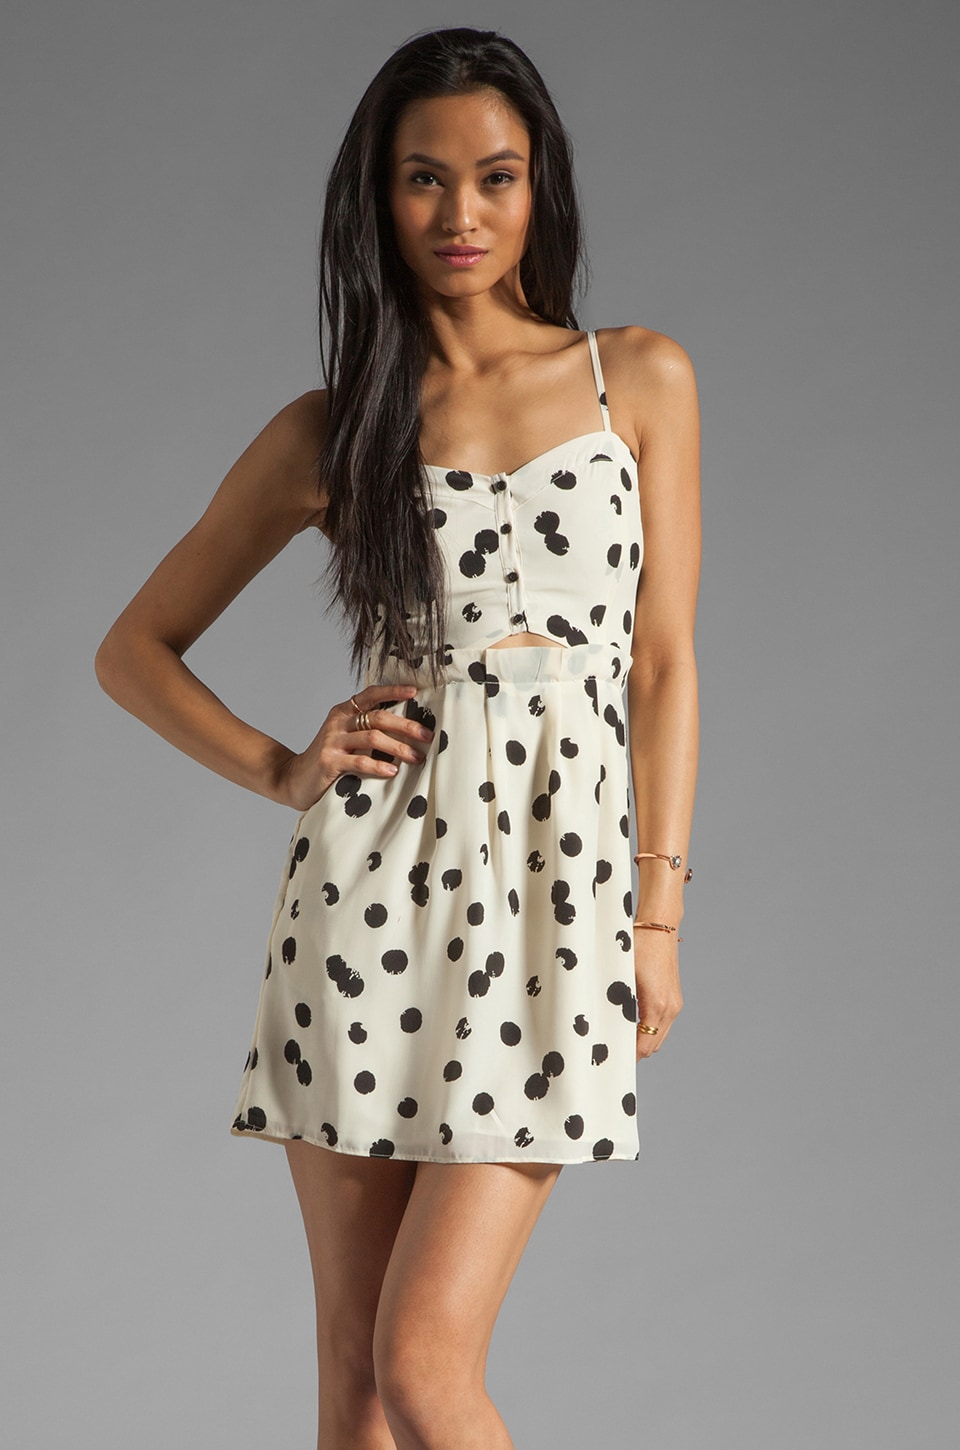 Dolce Vita Adisa Drip Dot Tank Dress in Black/White